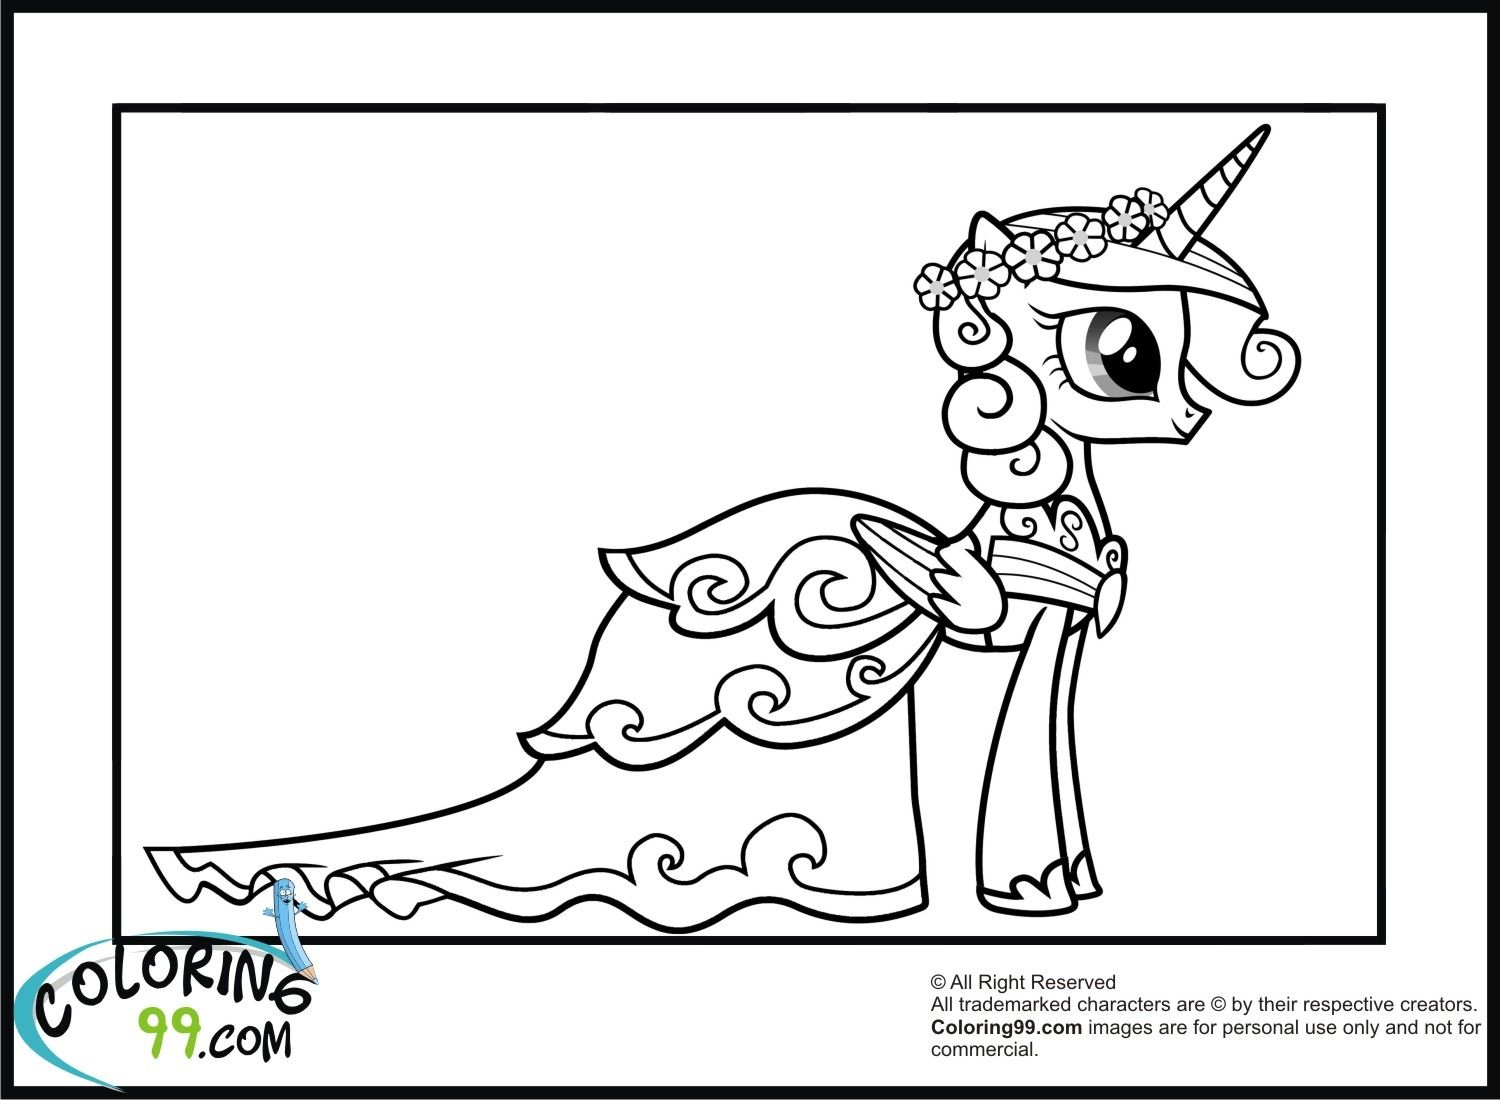 My Little Pony Dazzlings Coloring Pages. My Little Pony Princess Cadence Coloring Pages